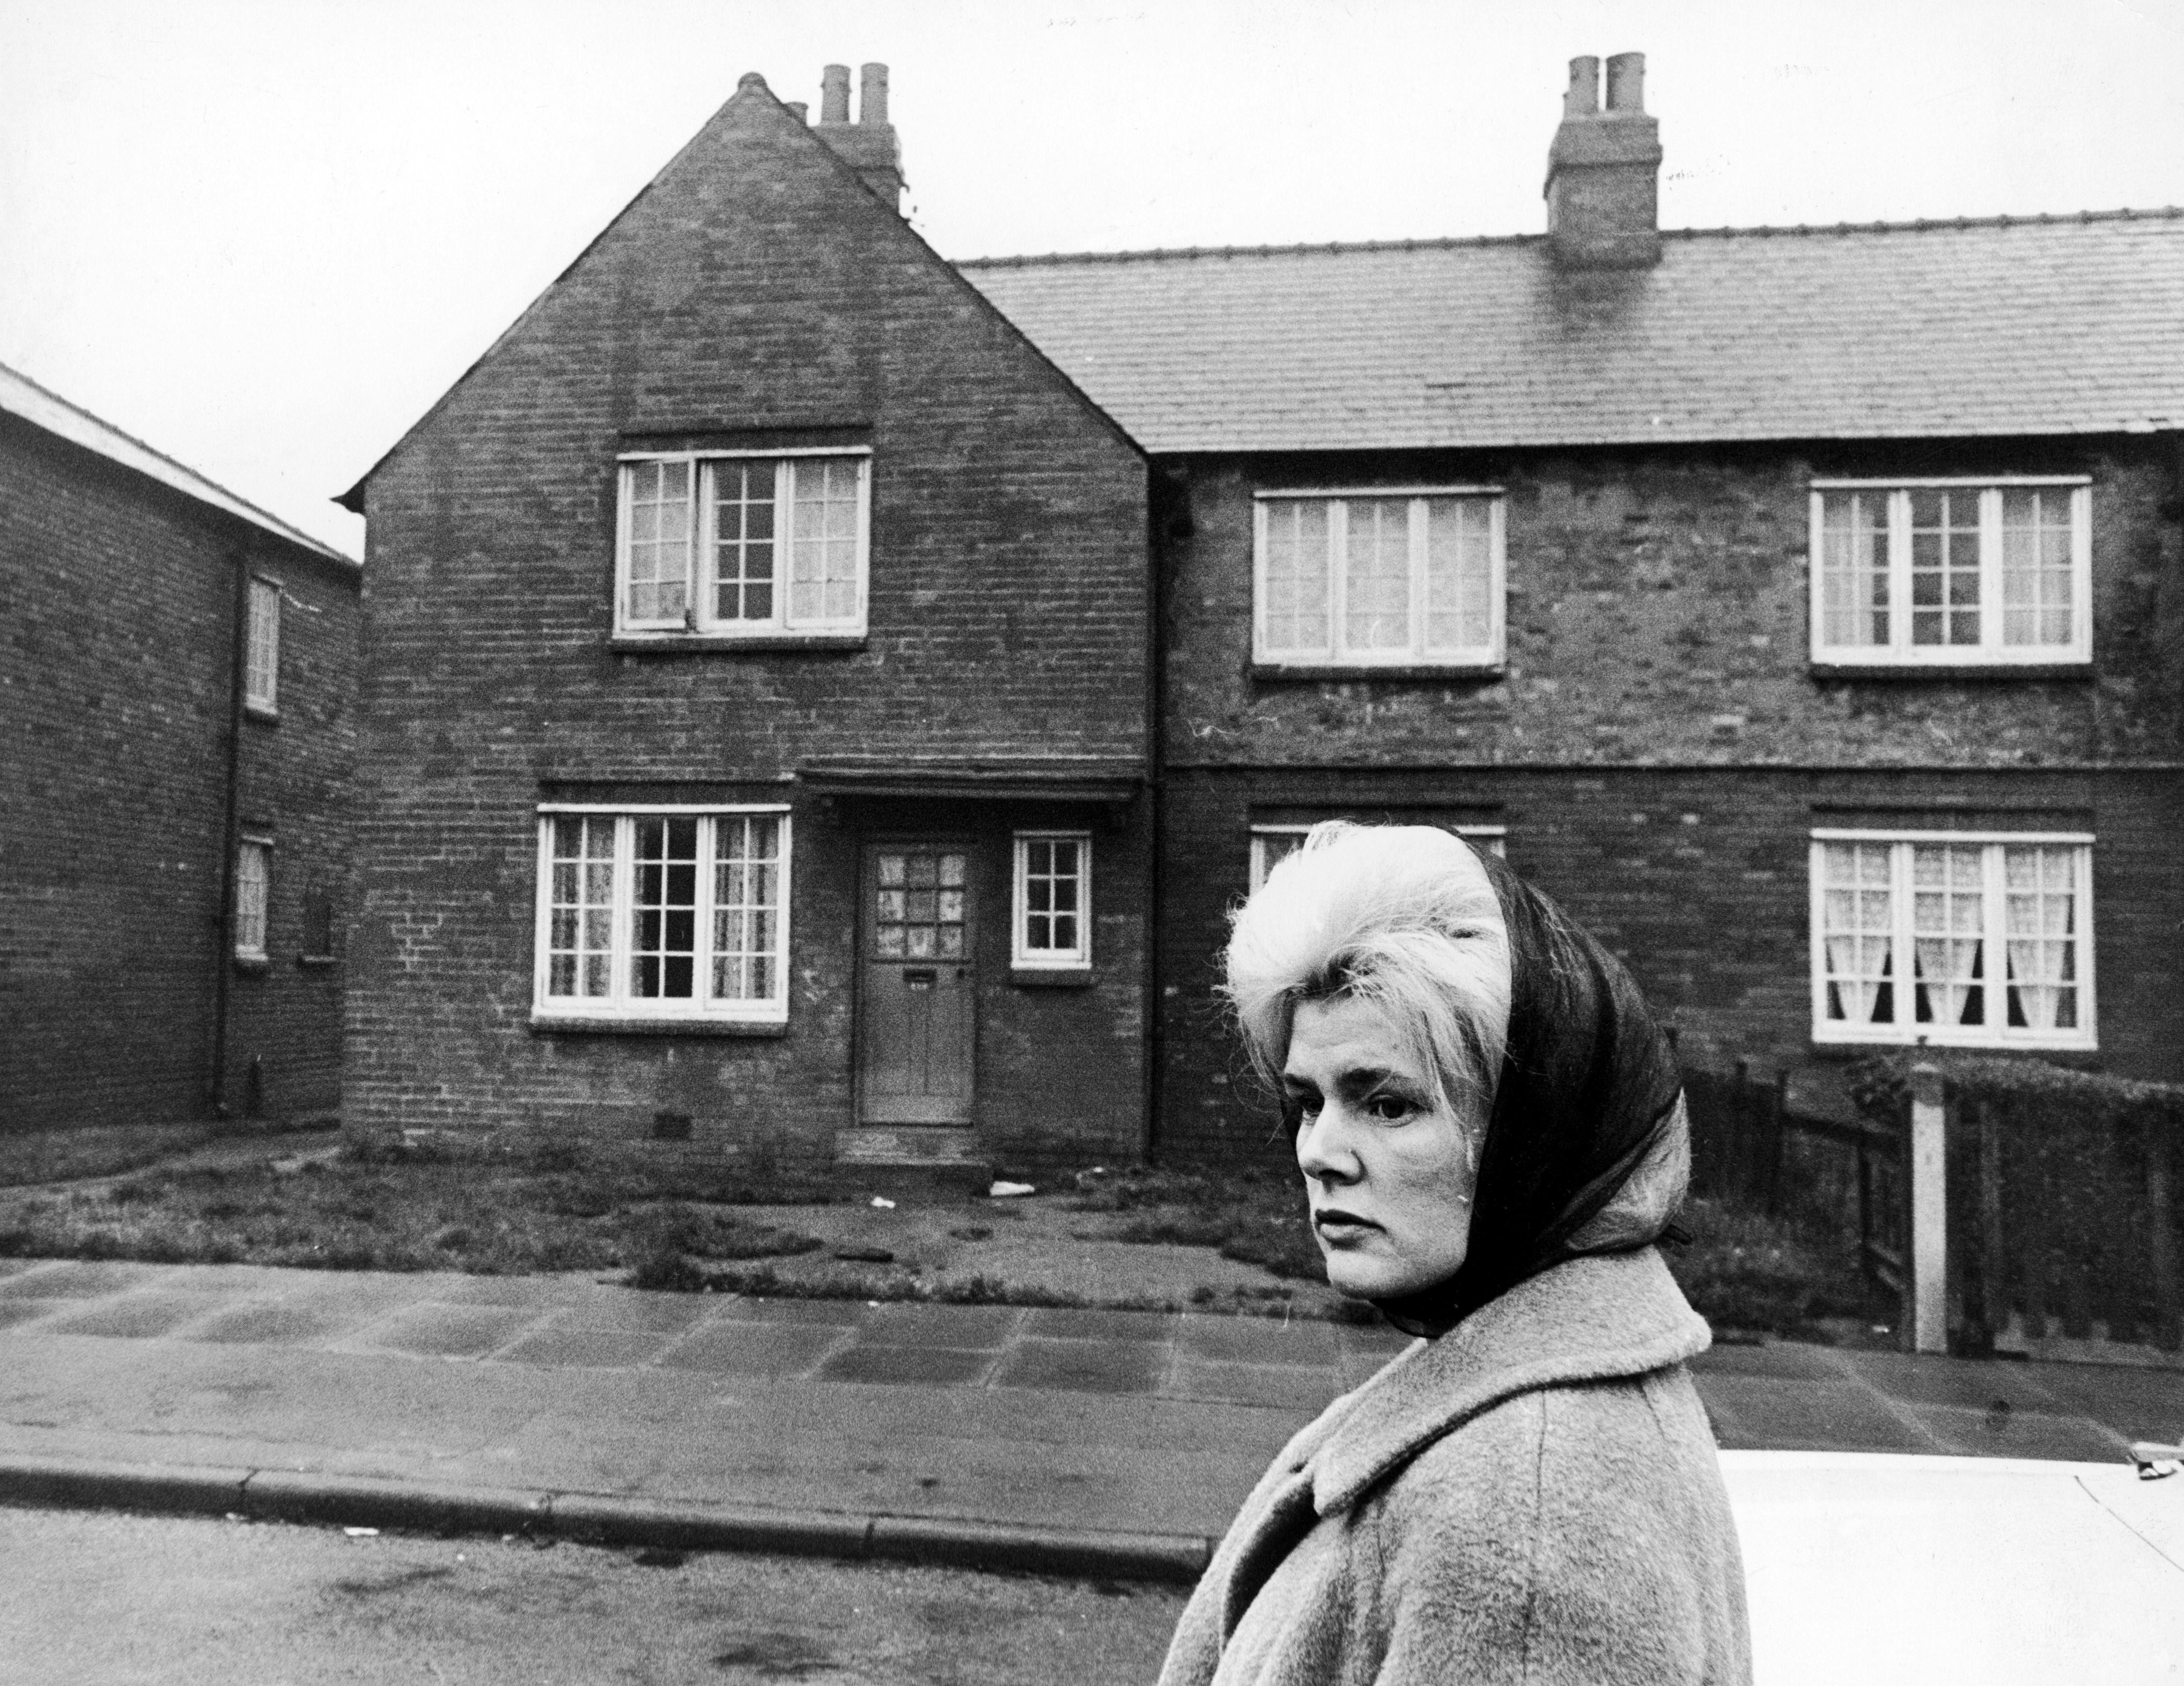 Original caption: The first big winner on the football pools, Viv Nicholson, returns to the street where she lived before striking it rich, her 38 shilling a week council house behind her.